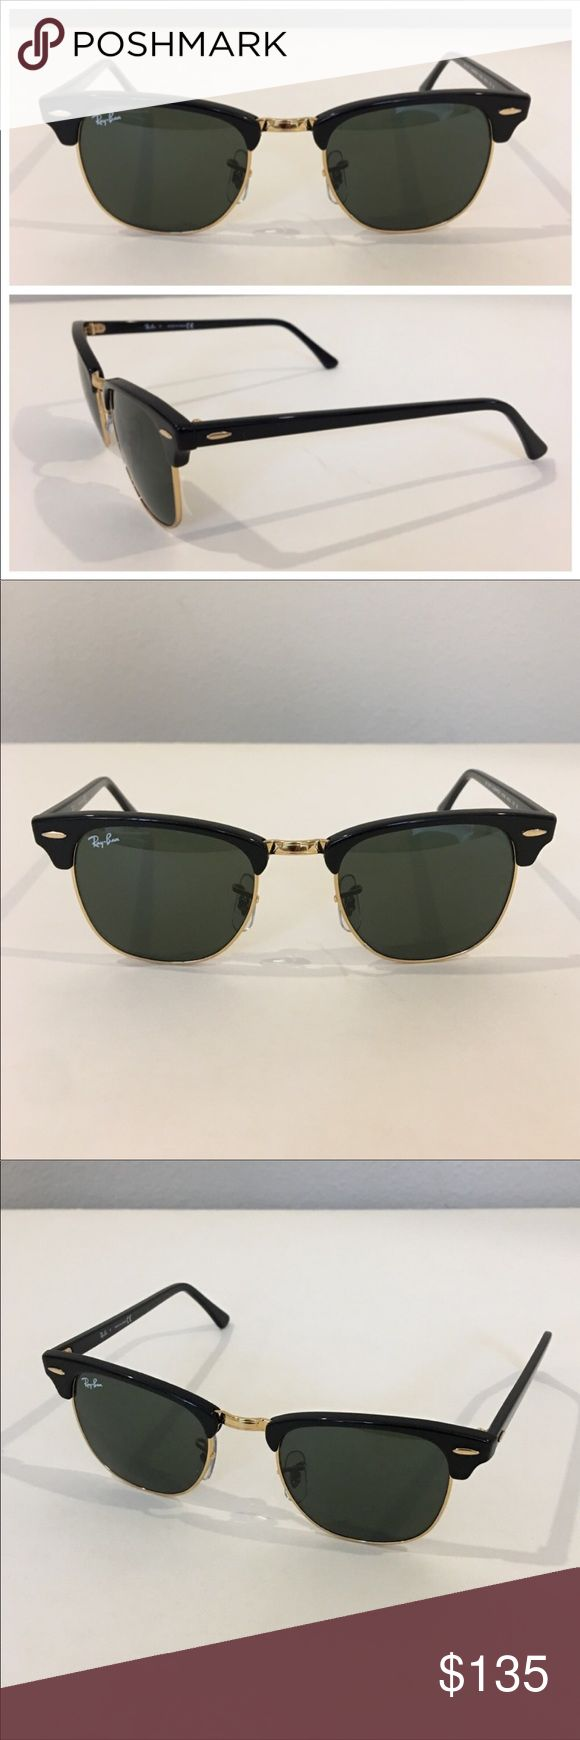 Authentic RAY BAN Clubmaster sunglasses Authentic RAY BAN Clubmaster sunglasses.  Model RB3016. Shiny black frames with gold tone trim and accents.  Marked with signature RB on lens and on eye pads, and inscribed with authenticity number on inner nose bri